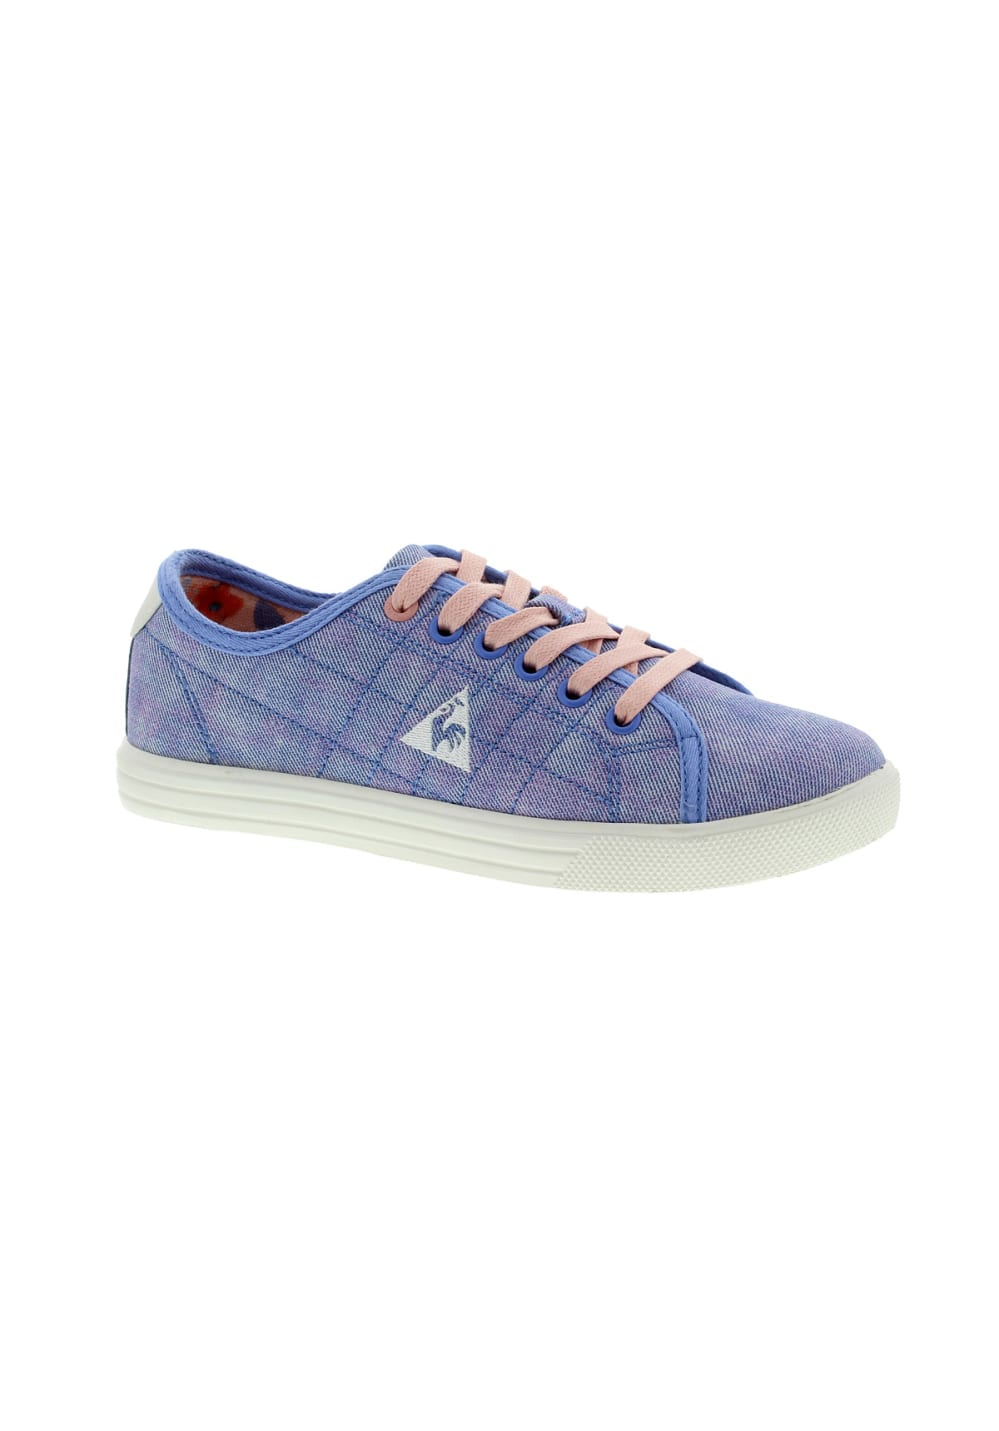 Le Coq Sportif Annency Low Girls Kids - Sneaker für Kinder Unisex - Blau